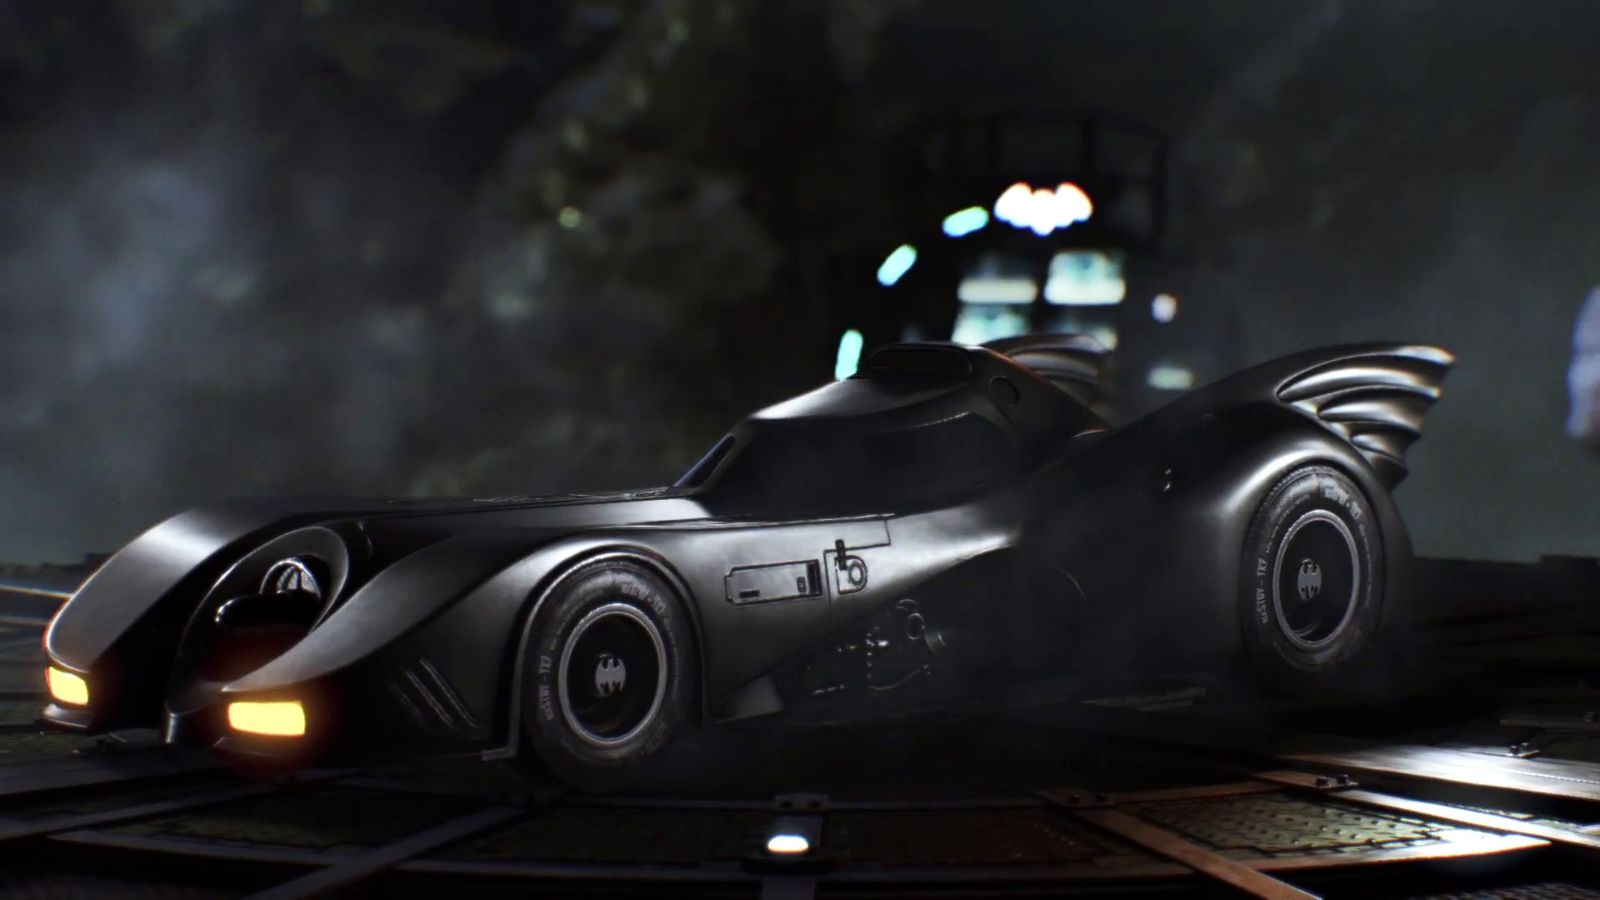 Batman Arkham Knight Gets Dark Knights Tumbler Next Month 1989 Batmobile Today